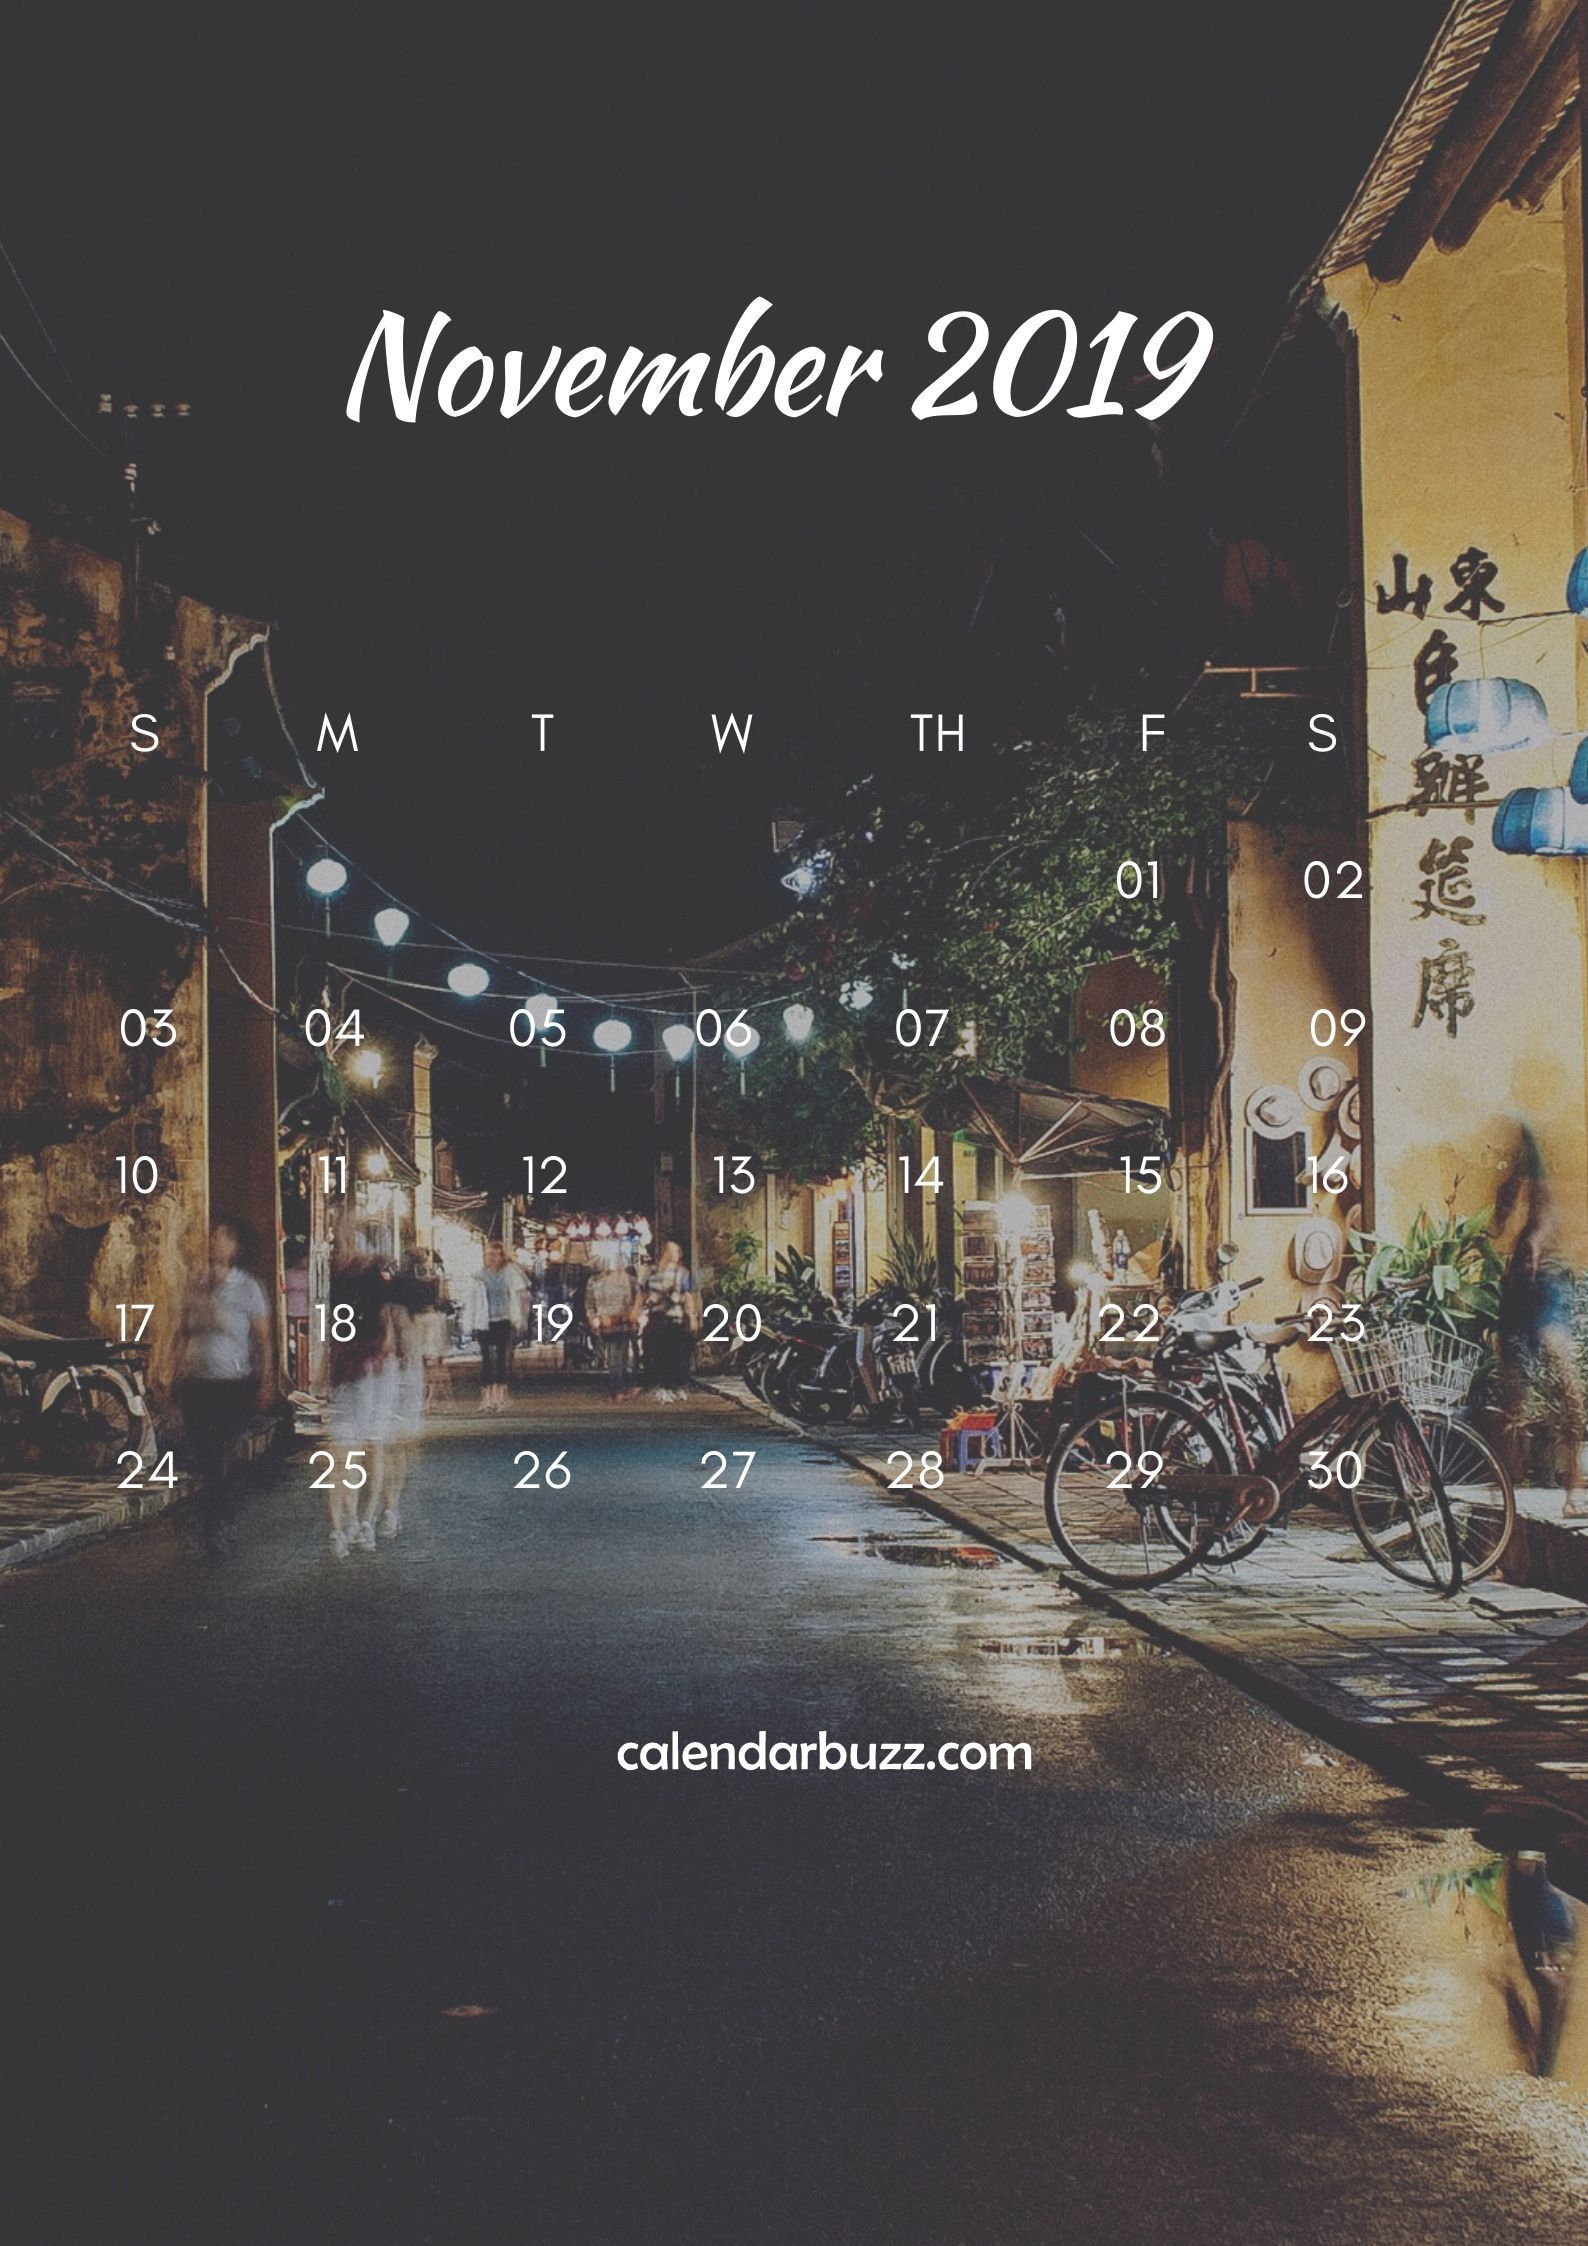 November 2019 iPhone Calendar Wallpapers | Обои для ...